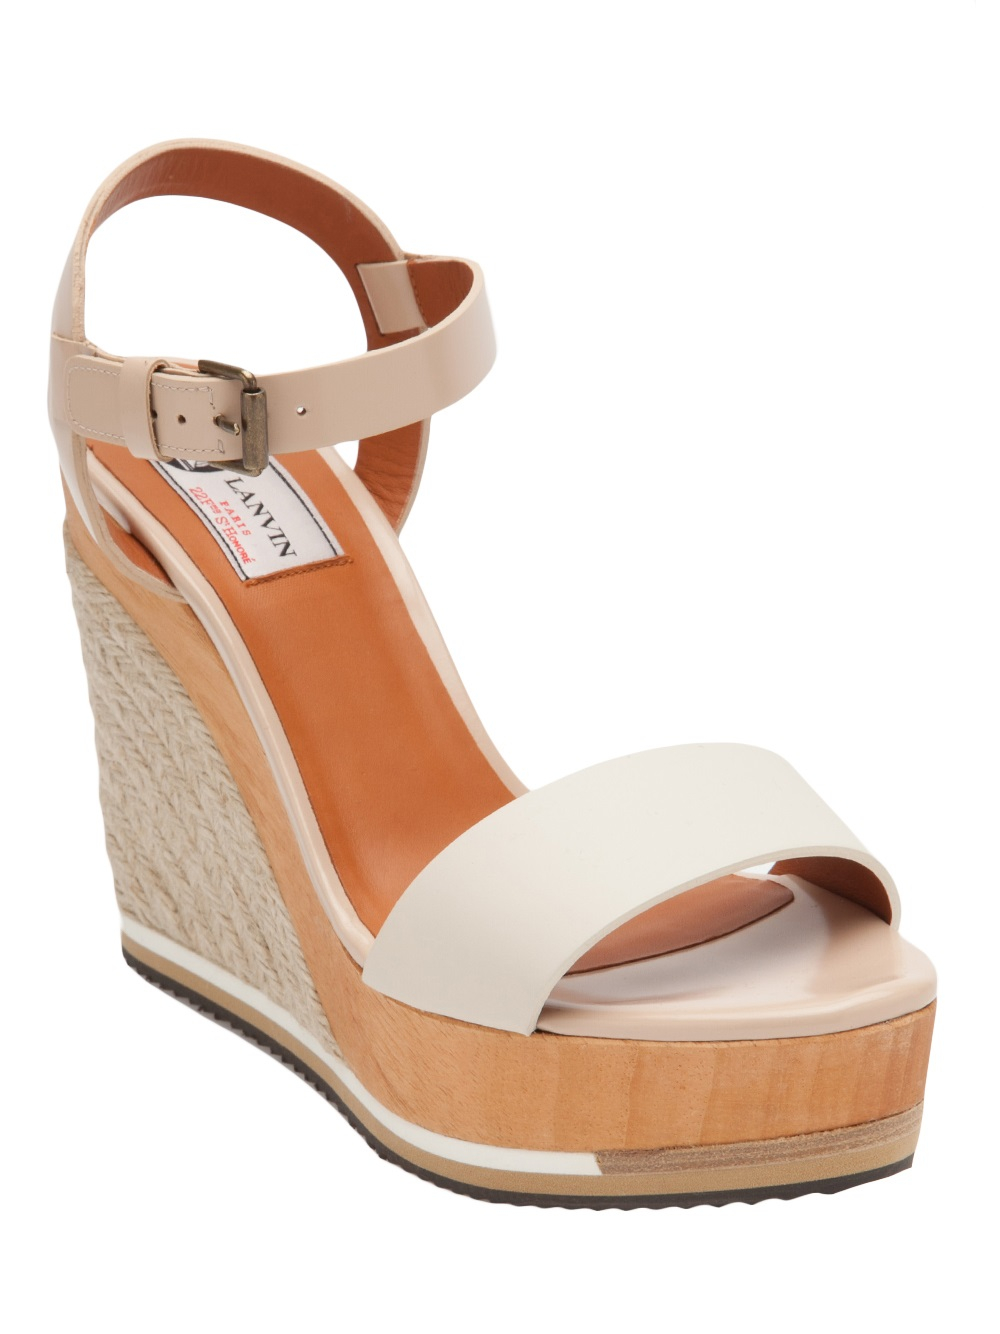 571c76e5459 Lyst - Lanvin Espadrille Wedge in Natural